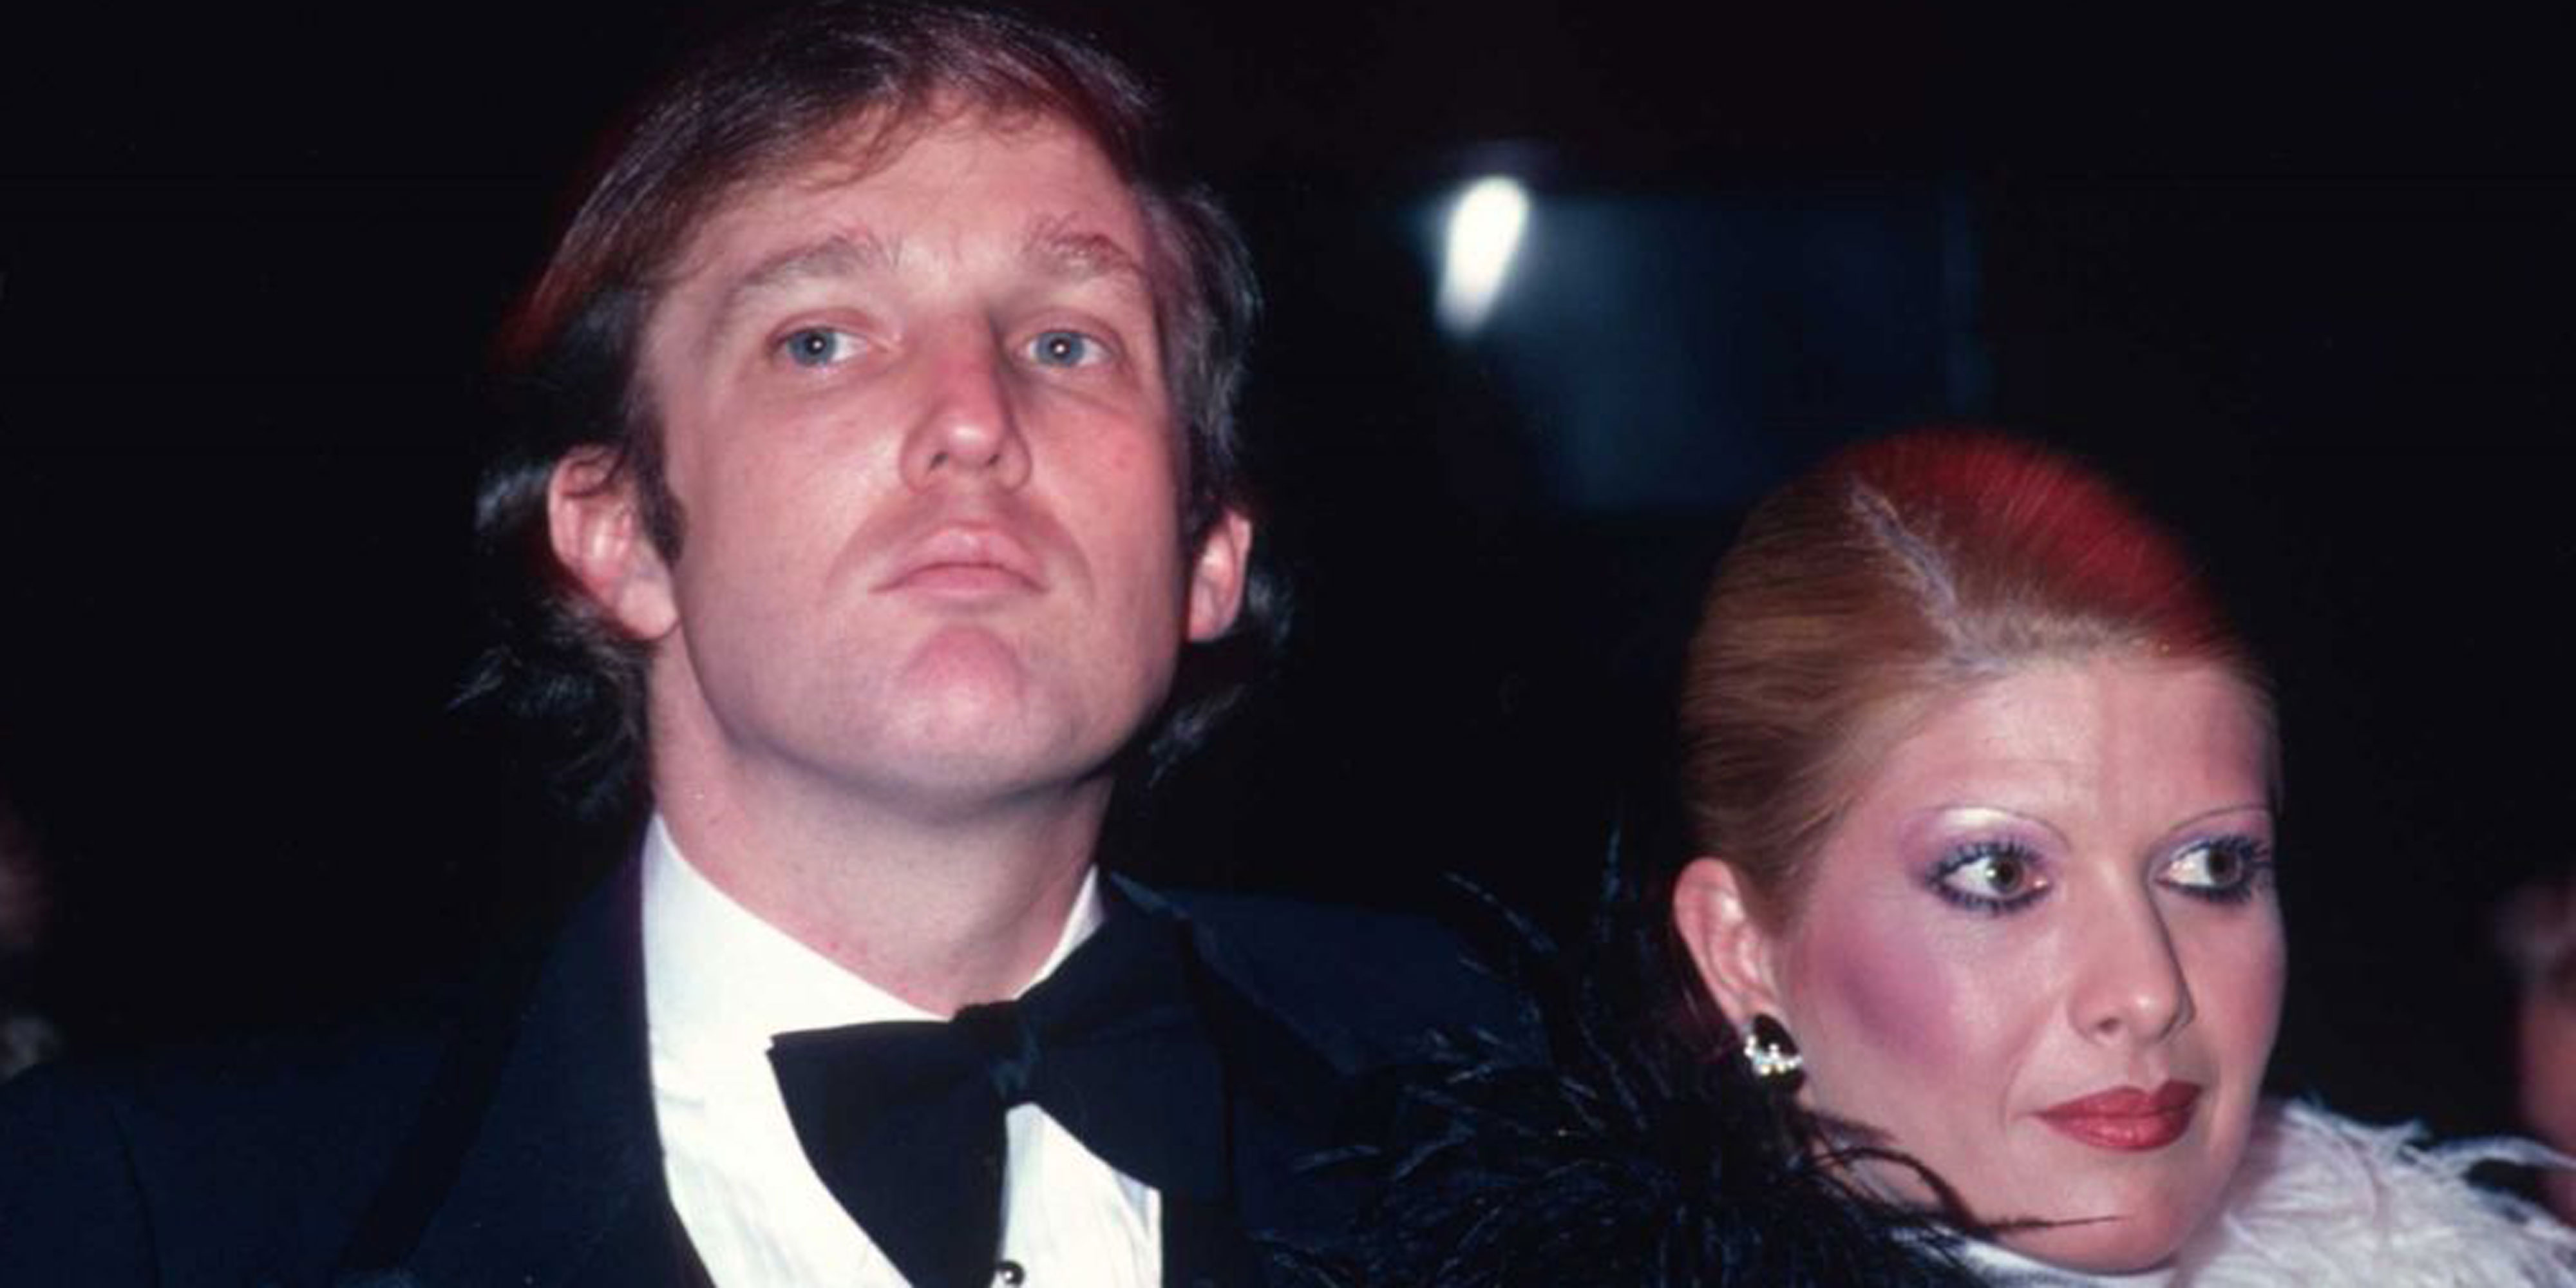 The Trumps: America's Most Riveting Real-Life Soap Opera